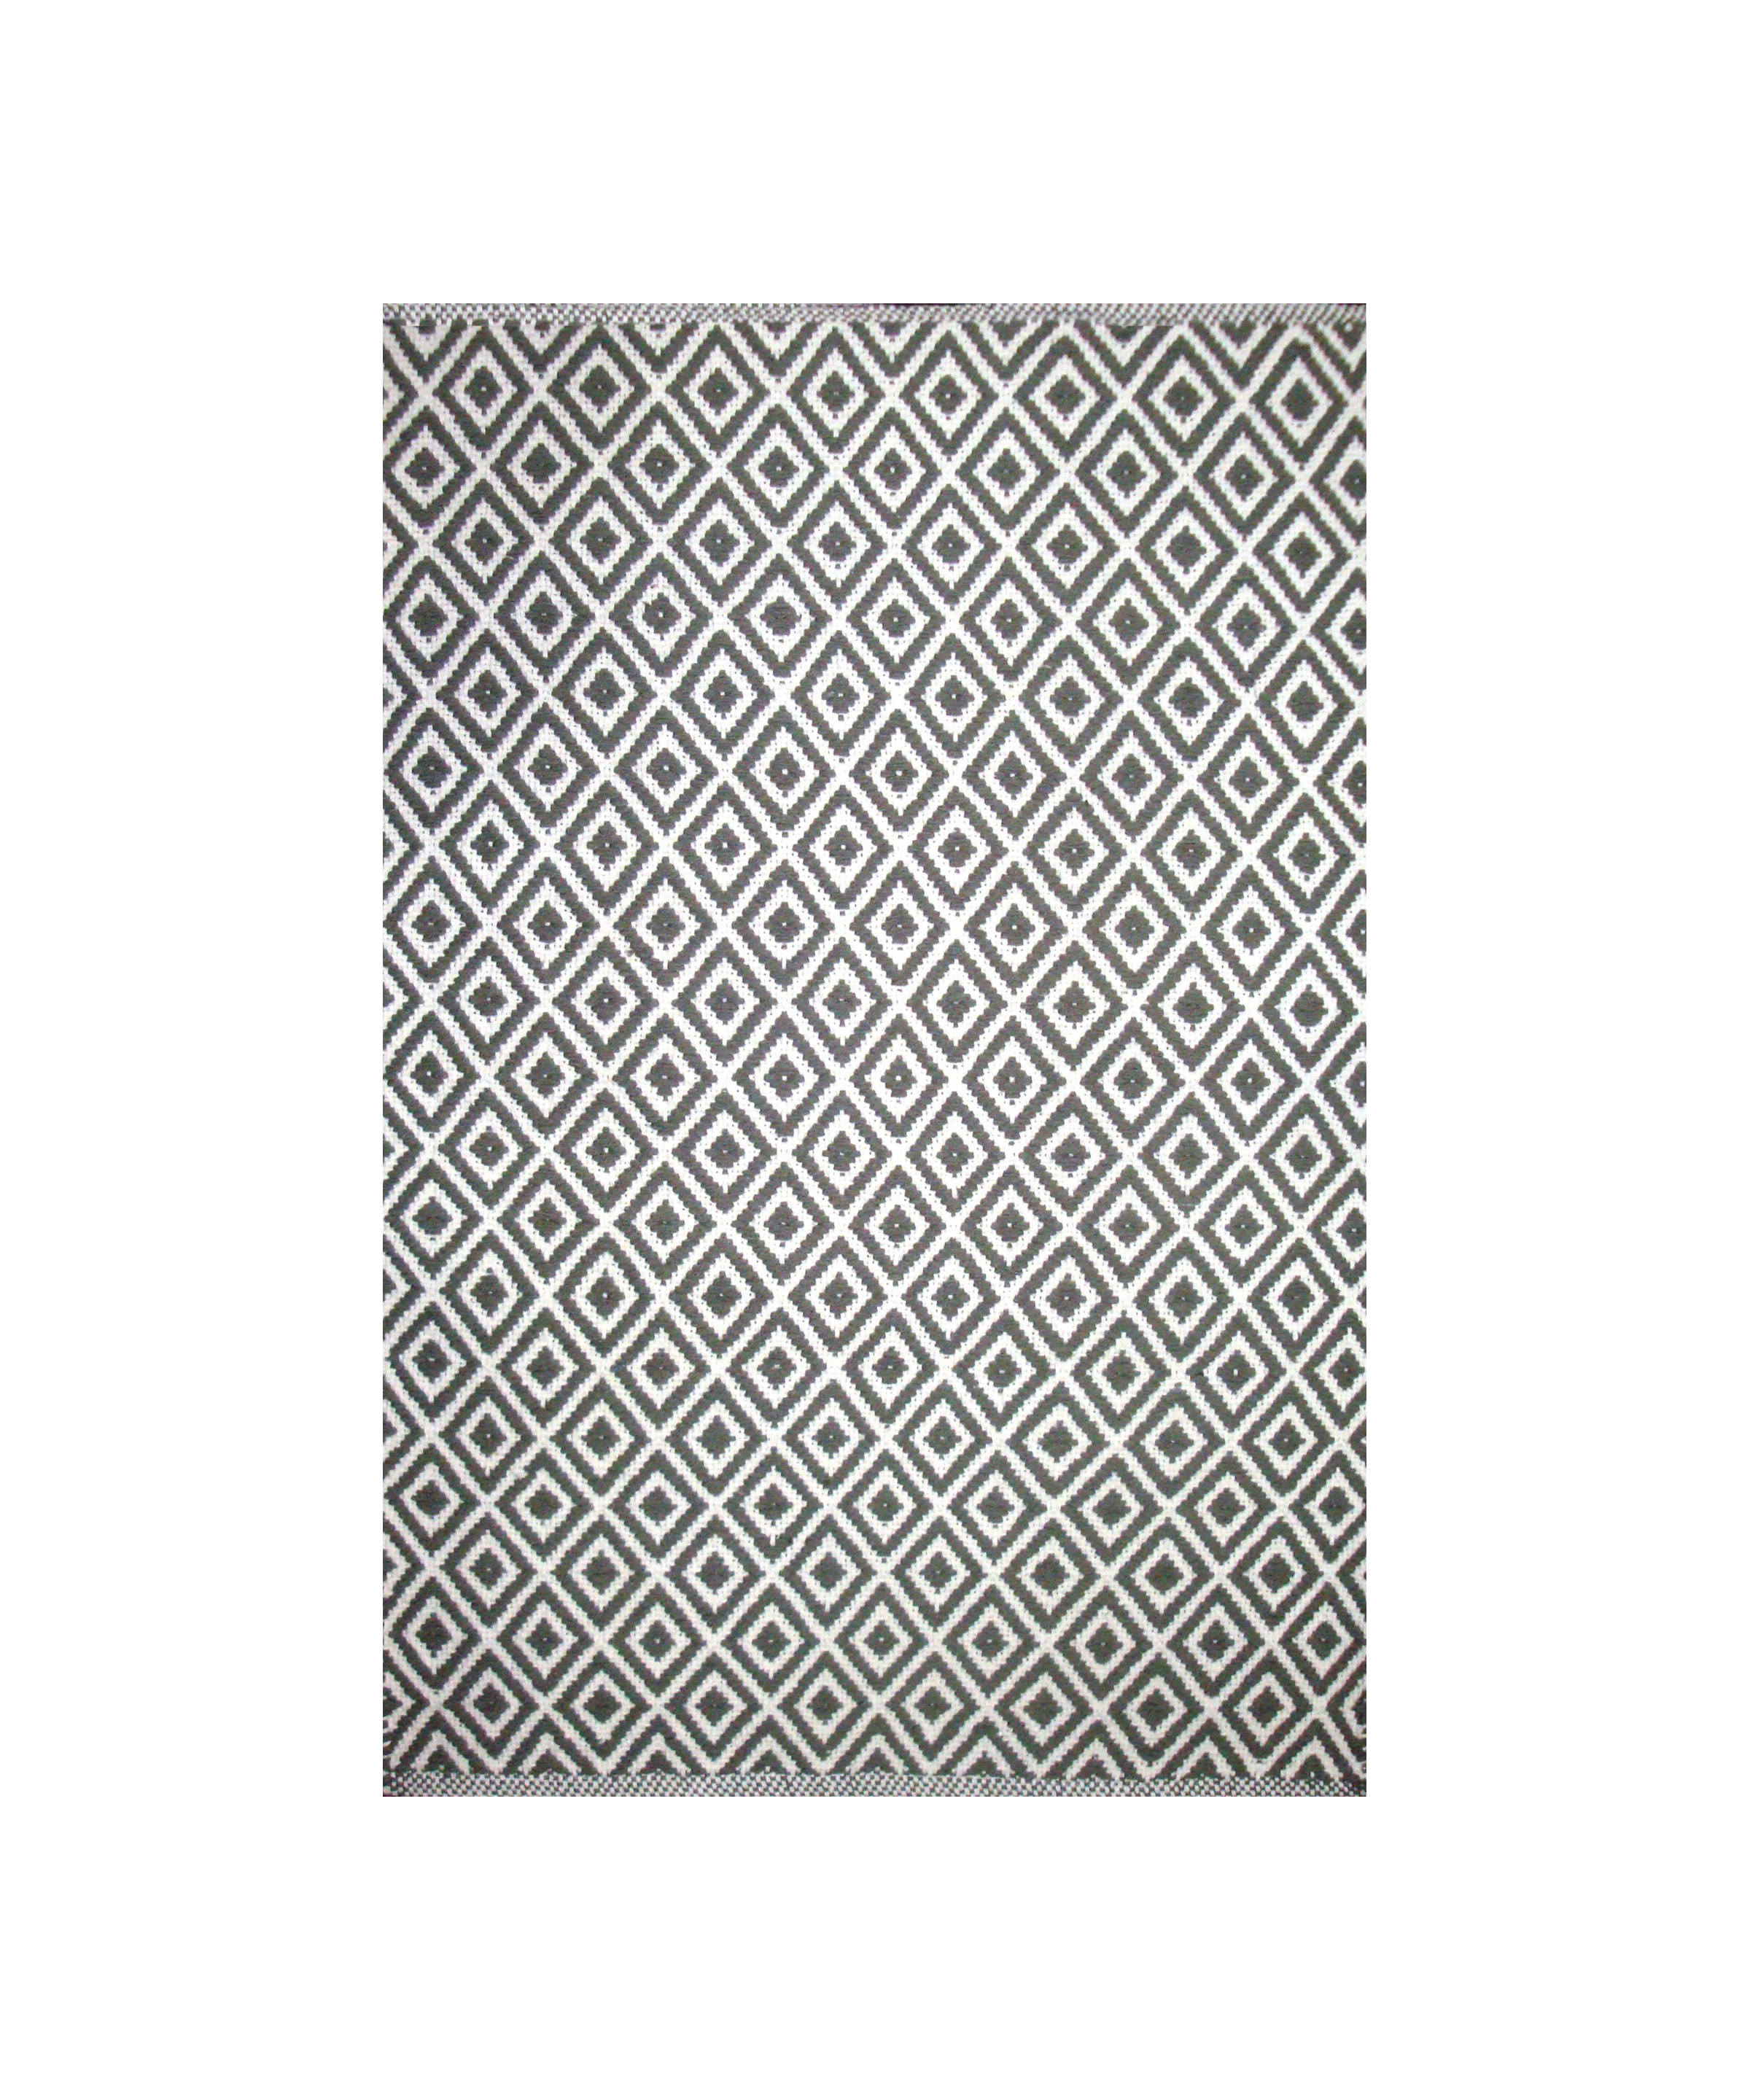 Dhurrie Lozenge Grey (Available Sizes: 4x6, 5x8, 7x9), Amanda's House Of Elegance  ($110.95 – $286.95)